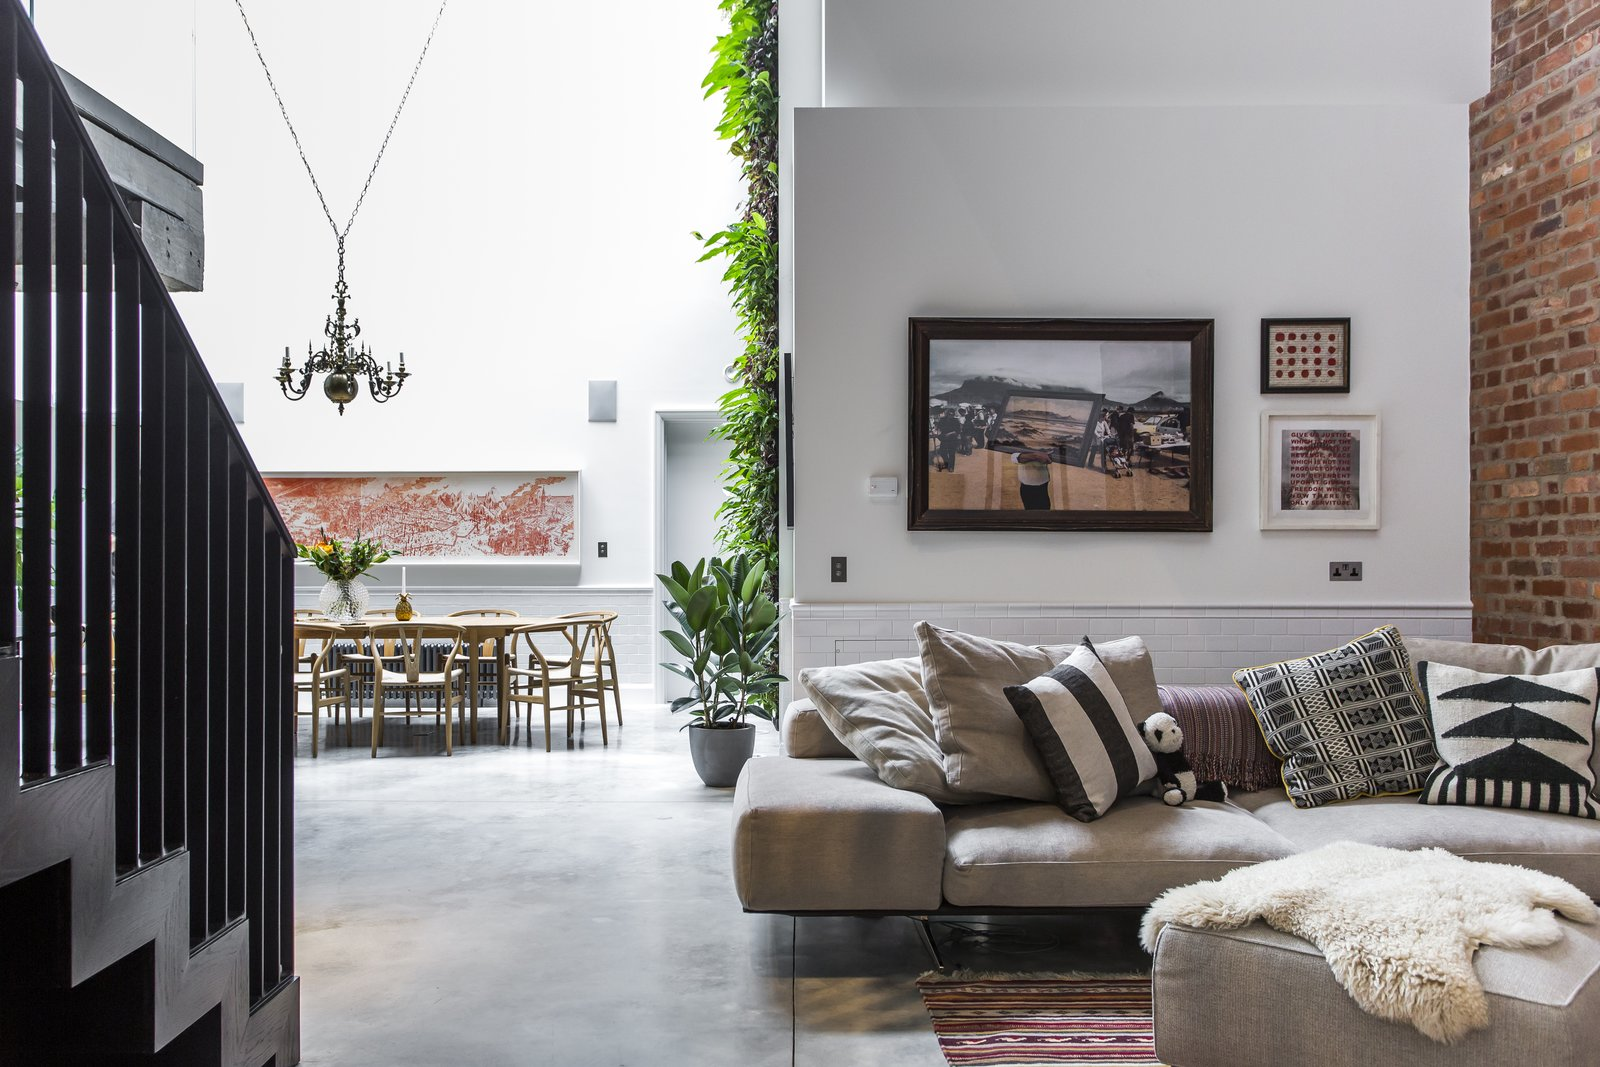 Living Room, Sofa, Table, Concrete Floor, Rug Floor, Chair, Pendant Lighting, and Ottomans Interior designer Andrea Larsson Sanchez complements the polished concrete floor, original Crittall windows, and exposed brick with contemporary furnishings and graphic textiles.  Photo 3 of 8 in Stay in a Converted Victorian Cooperage in London